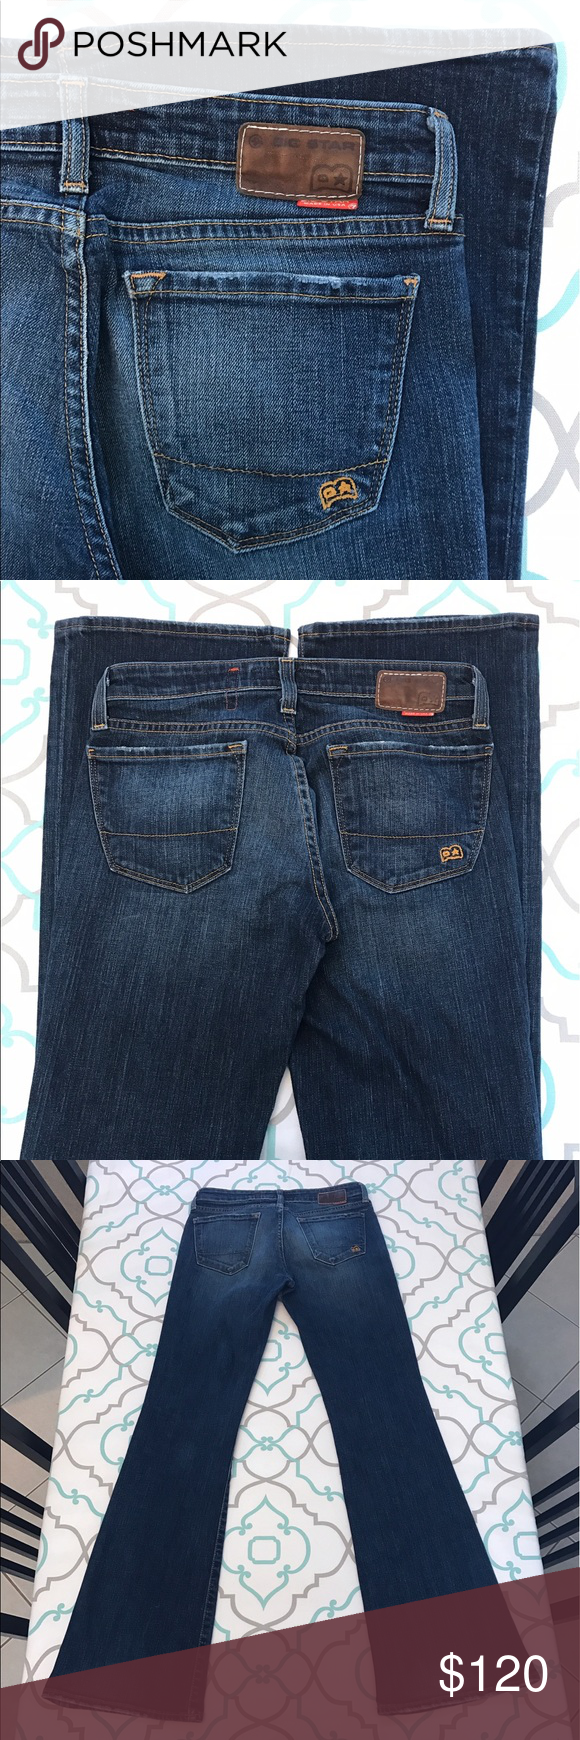 """💙👖Awesome Vintage Big Star Jeans!!👖💙27 3/4 33"""" 💙👖Awesome Vintage Big Star Jeans👖💙 Size 27 (3/4). 32.75"""" Inseam. 7.25"""" Rise. 14.25"""" Across Back. No Fabric Content. Looks like a """"sample"""" tag (jeans sent to buyers to make purchasing decisions). ; ) Great Stretch. Dark Blue Wash. Light Fading. Flare Fit. Light Distressing/Wear to Pockets and hems. Teeny Ti y little snag. SO CUTE! Big Stars! The Buckle! Ask me any questions! : ) Big Star Jeans Flare & Wide Leg"""